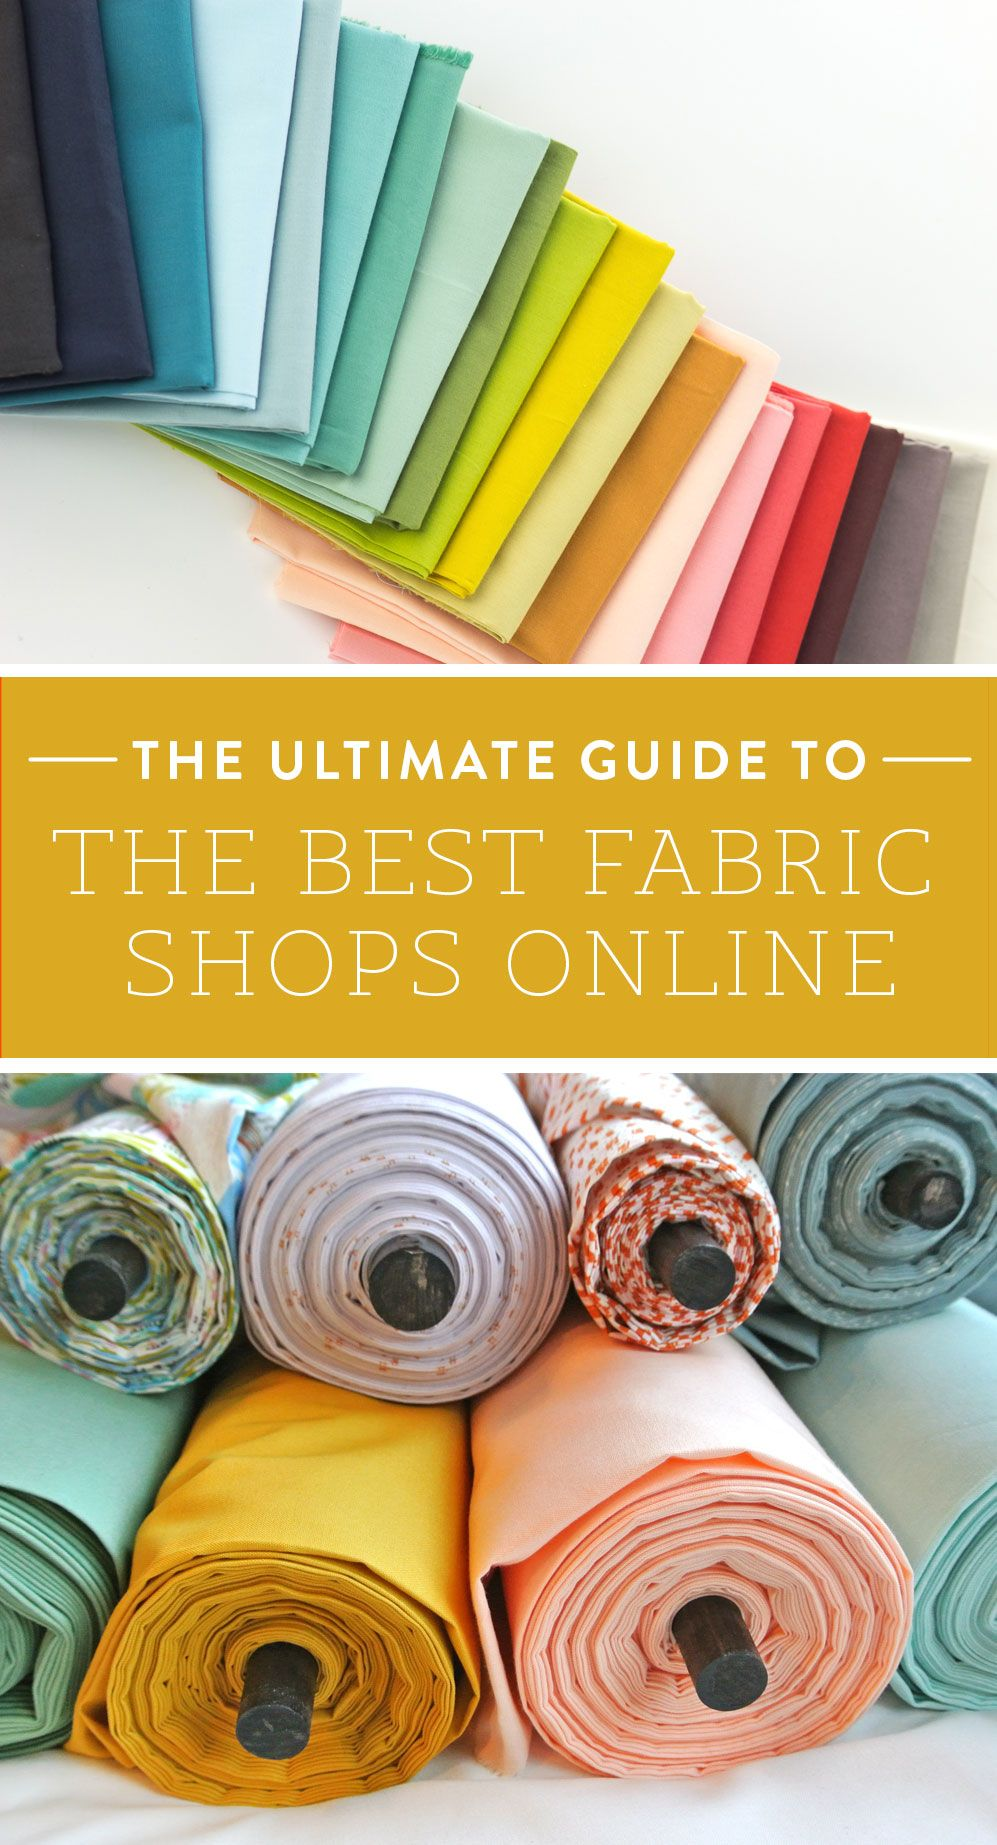 The Ultimate Guide to the Best Fabric Shops Online | Fabric shop ... : online quilt fabric shops - Adamdwight.com